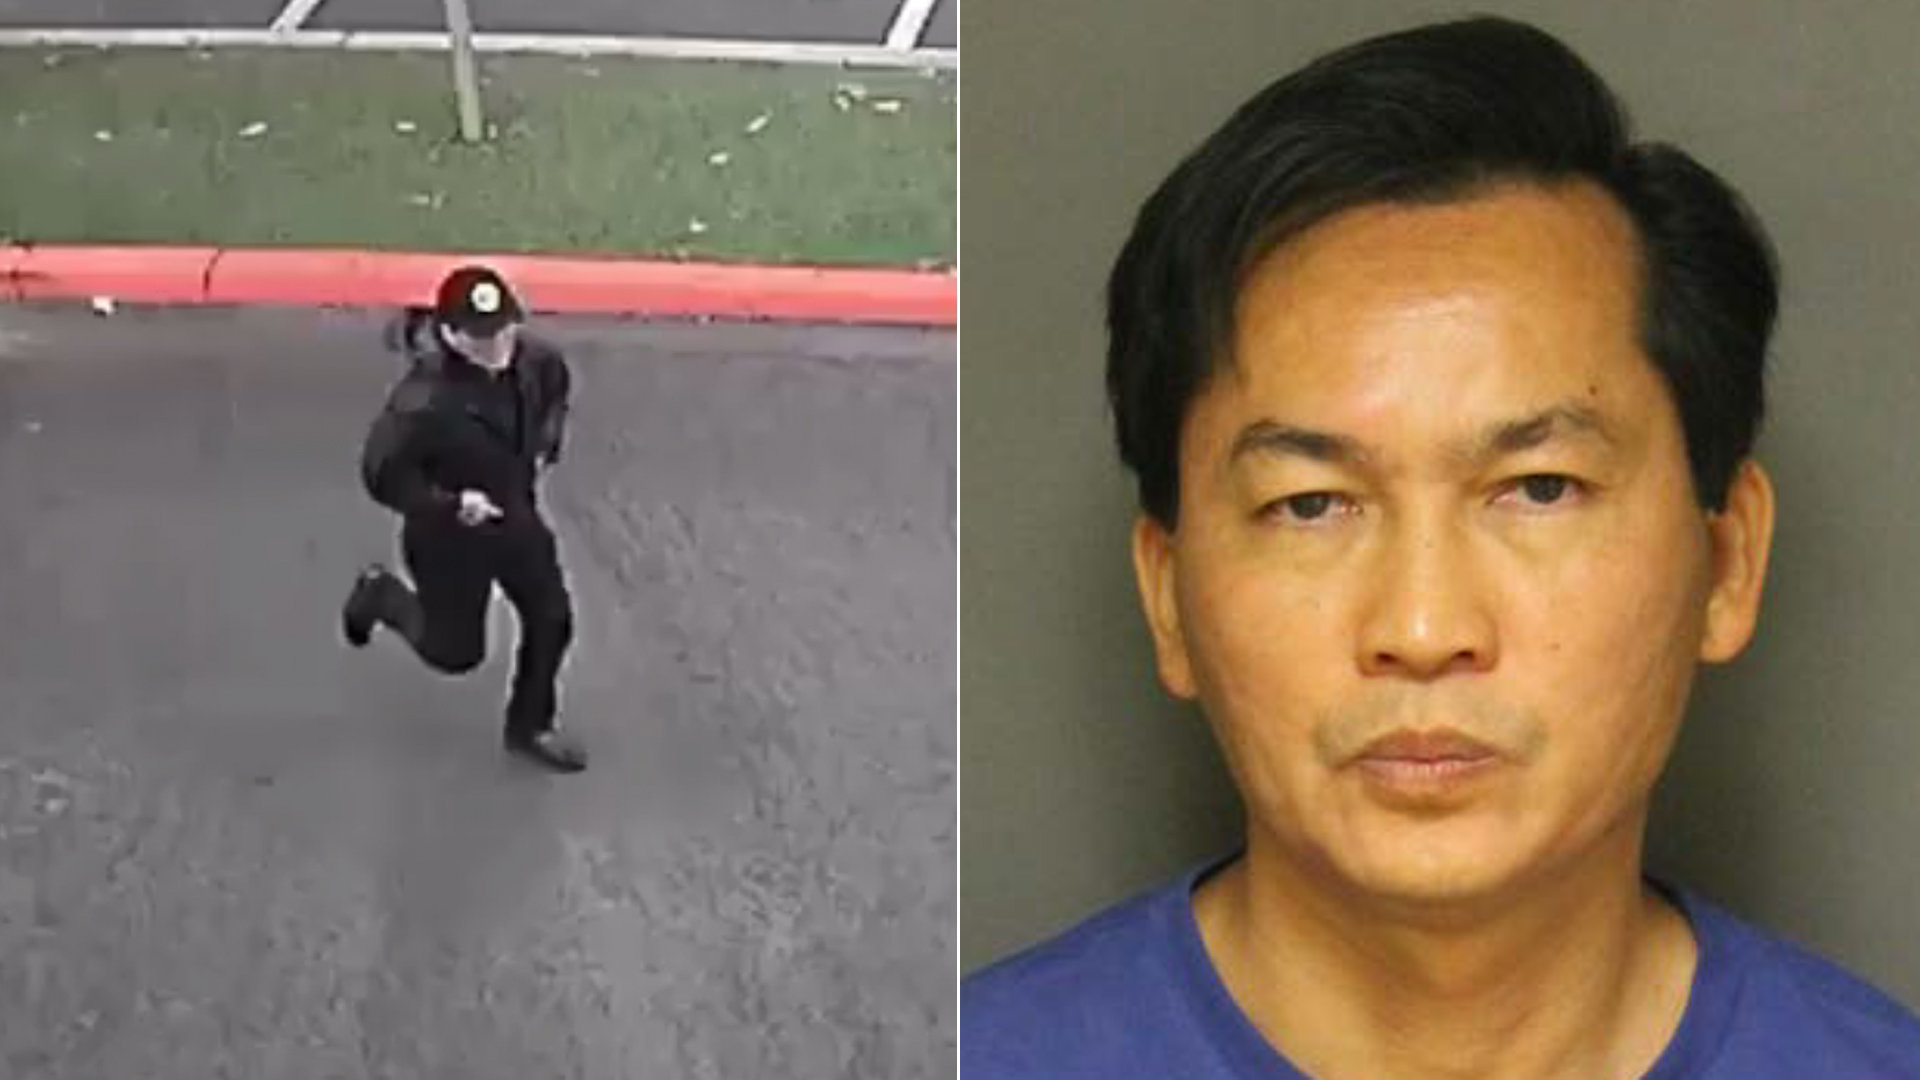 Chuyen Vo, left, is seen in a booking photo released Aug. 22, 2019, by the Fullerton Police Department. Detectives believe he's the man seen in a surveillance image at right fleeing the scene of a killing at Cal State Fullerton on Aug. 19, 2019.